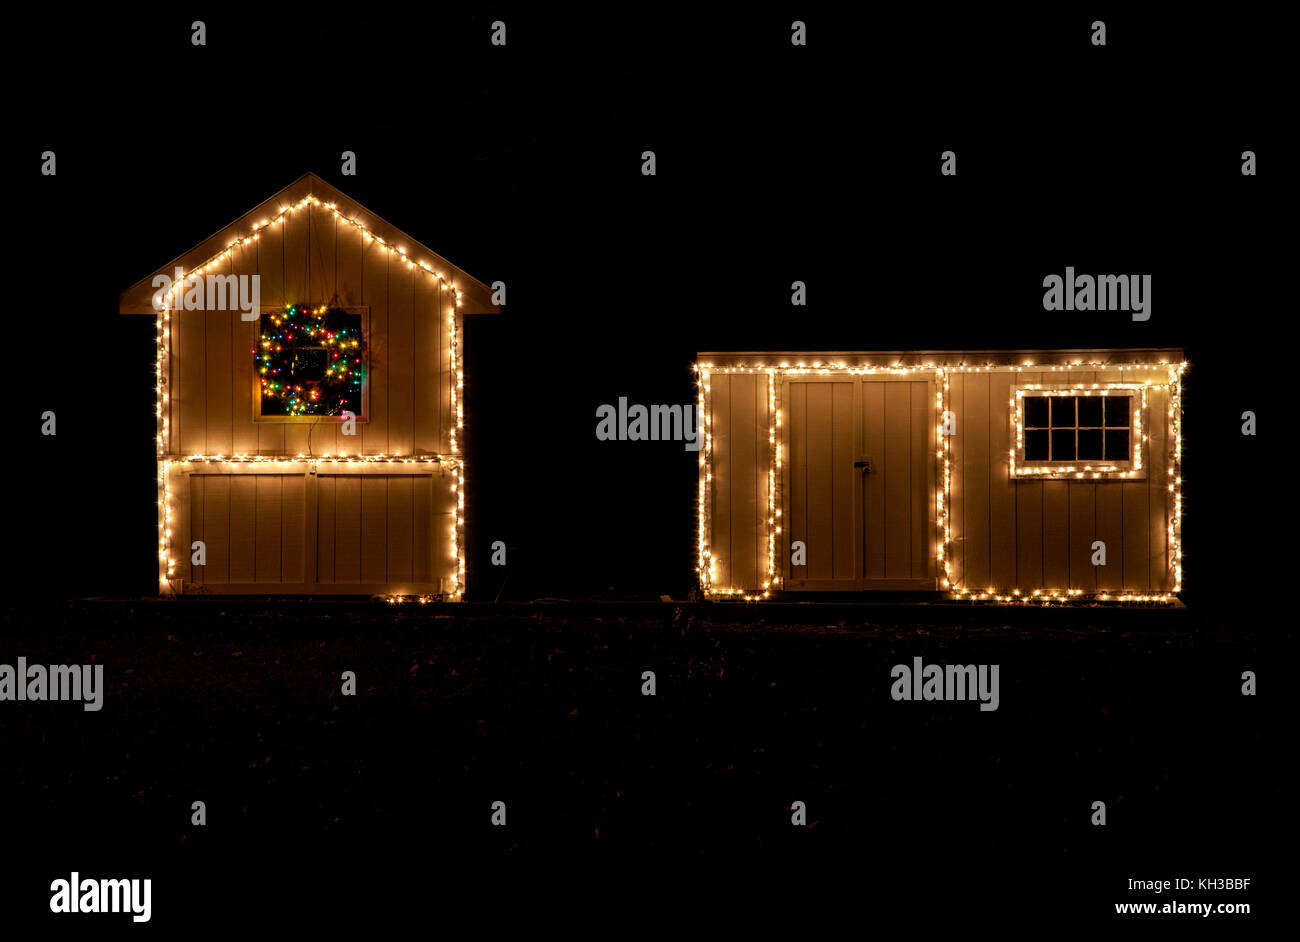 christmas lights at night on two small garden sheds new jersey usa